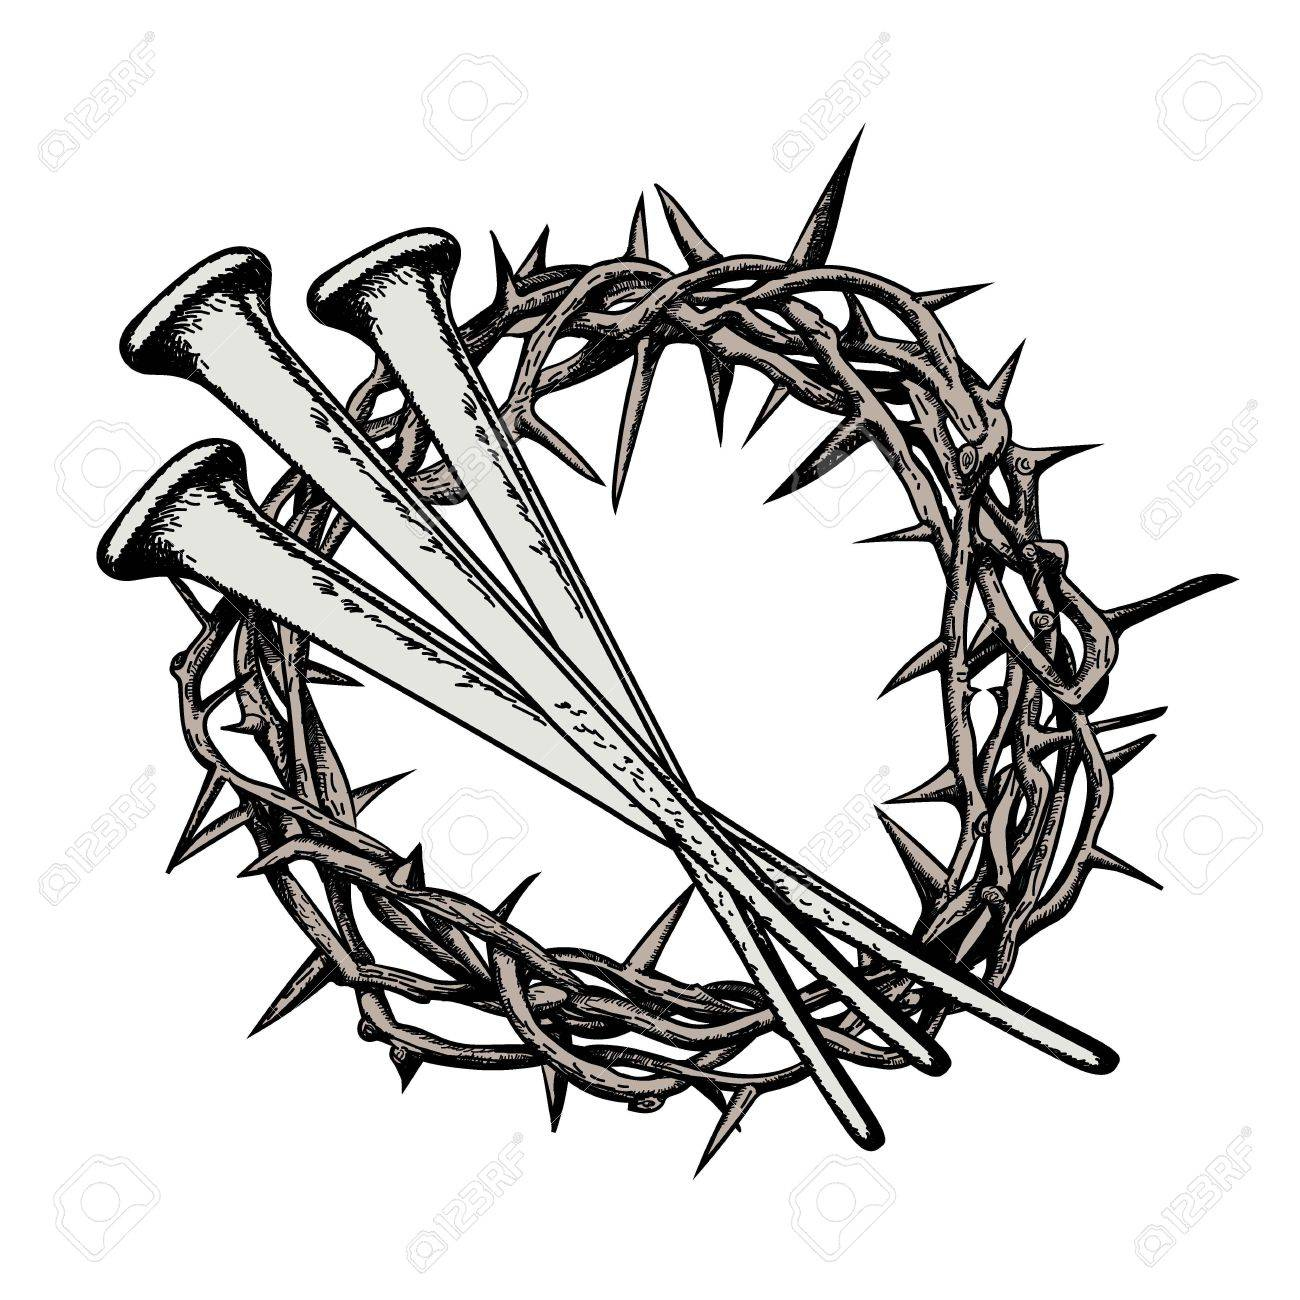 1300x1300 The Crown Thorns With The Nails Jesus Christ. Symbols